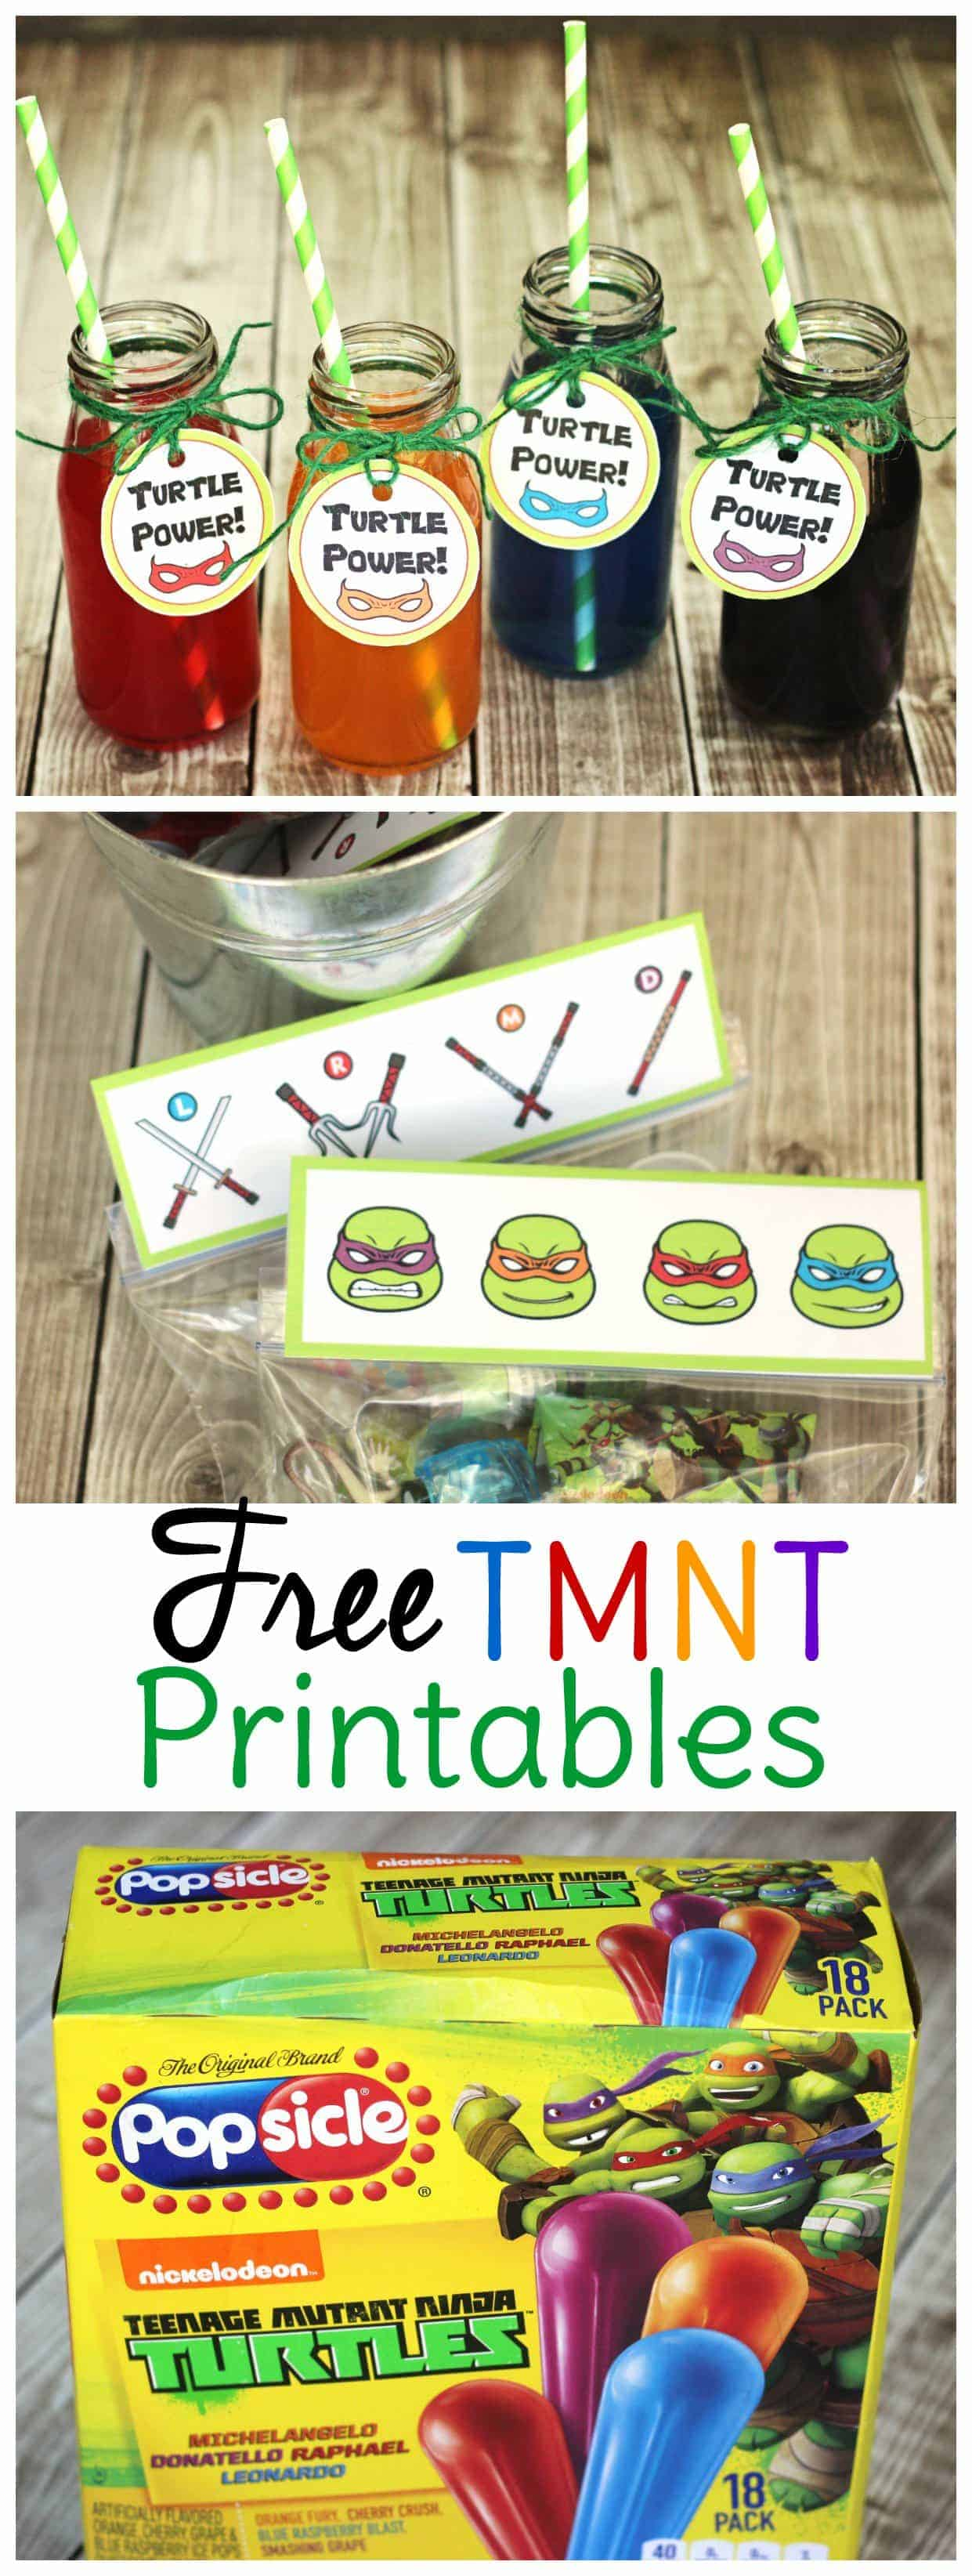 Use these TMNT party ideas and free TMNT printables to throw an epic birthday party or playdate!